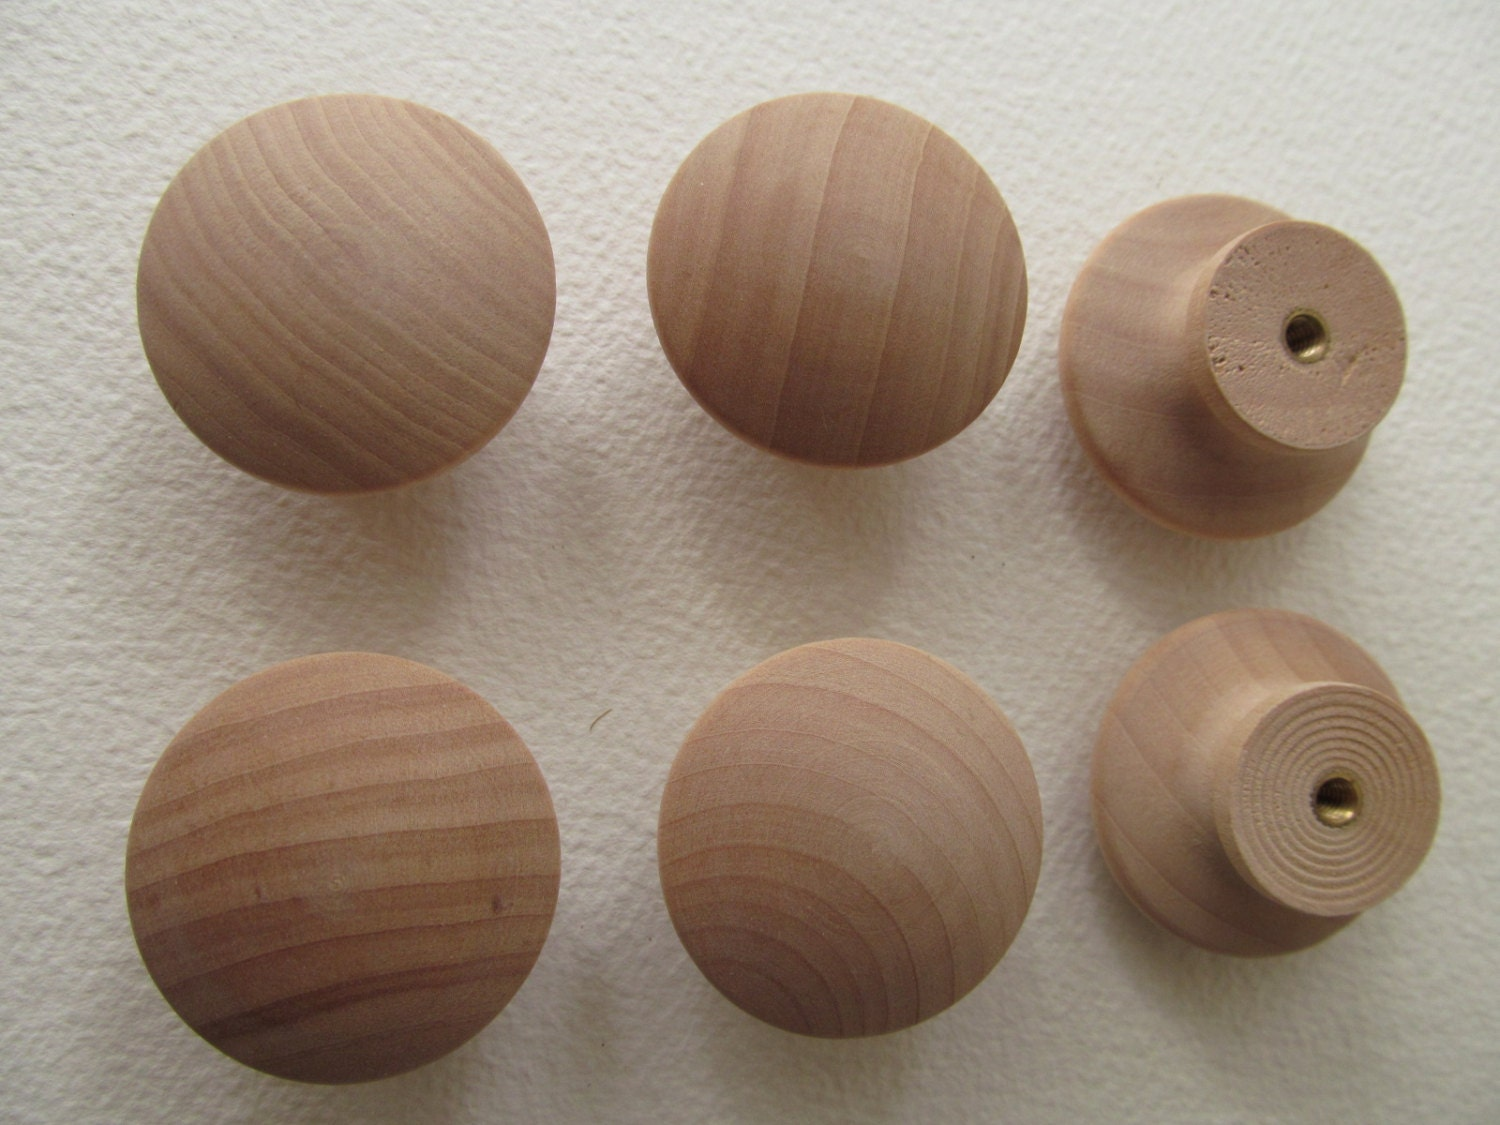 Wooden Drawer Cabinet Knobs With Insert And Screws